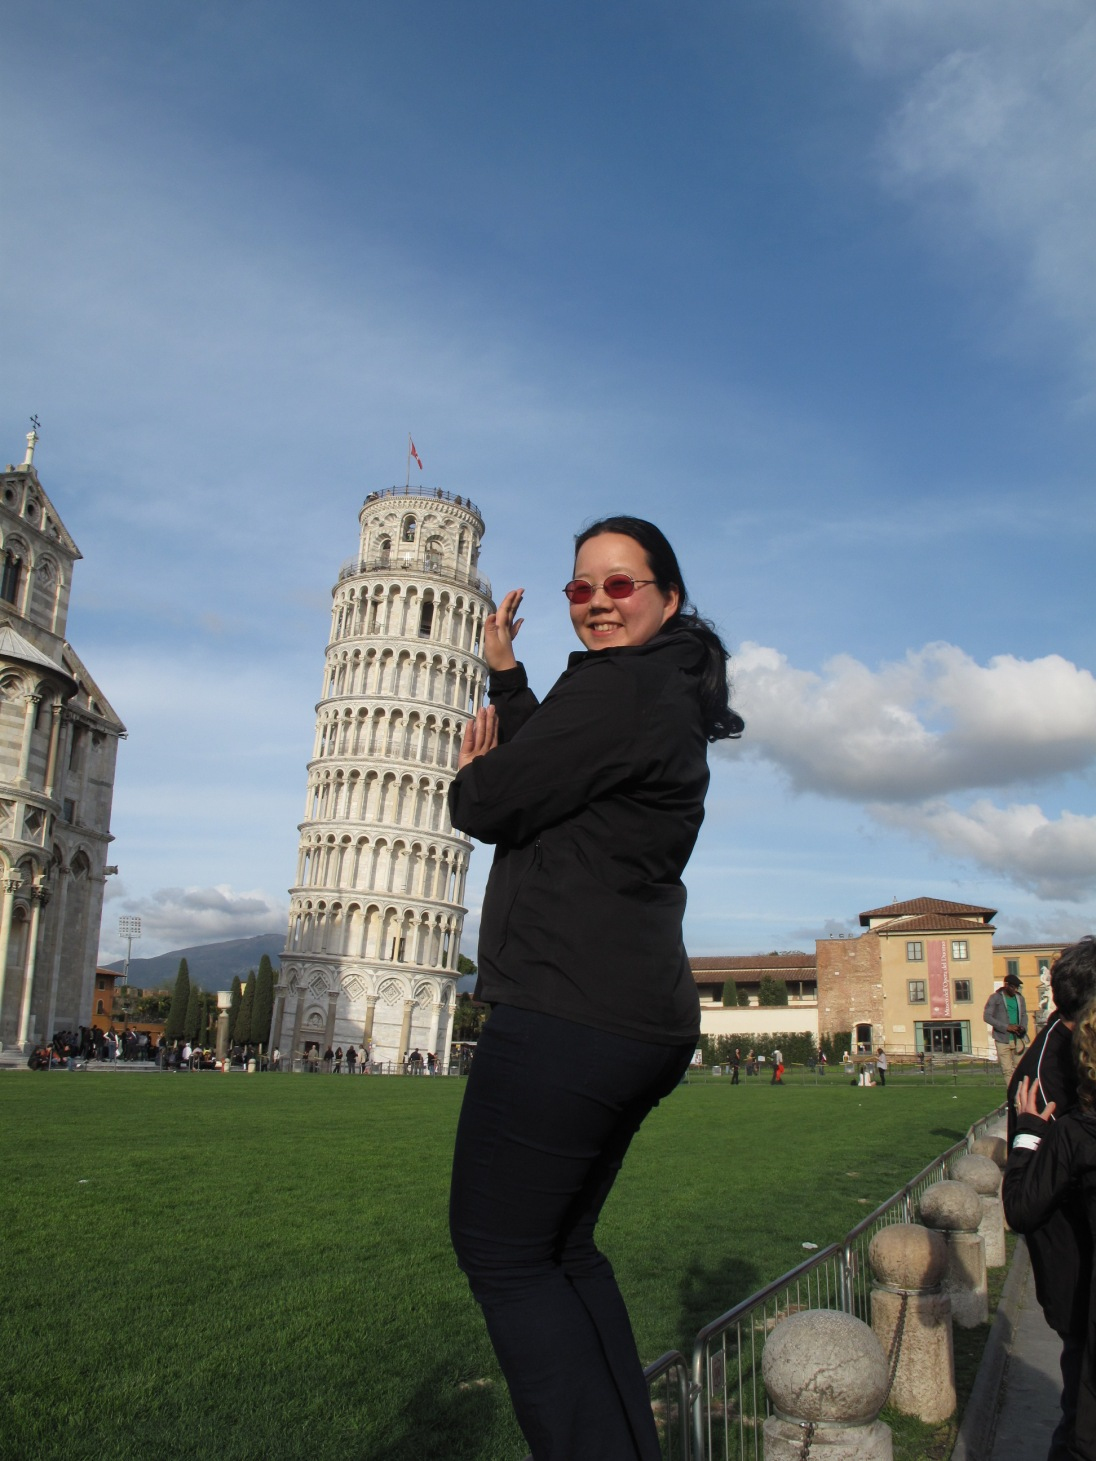 Holding the leaning tower up